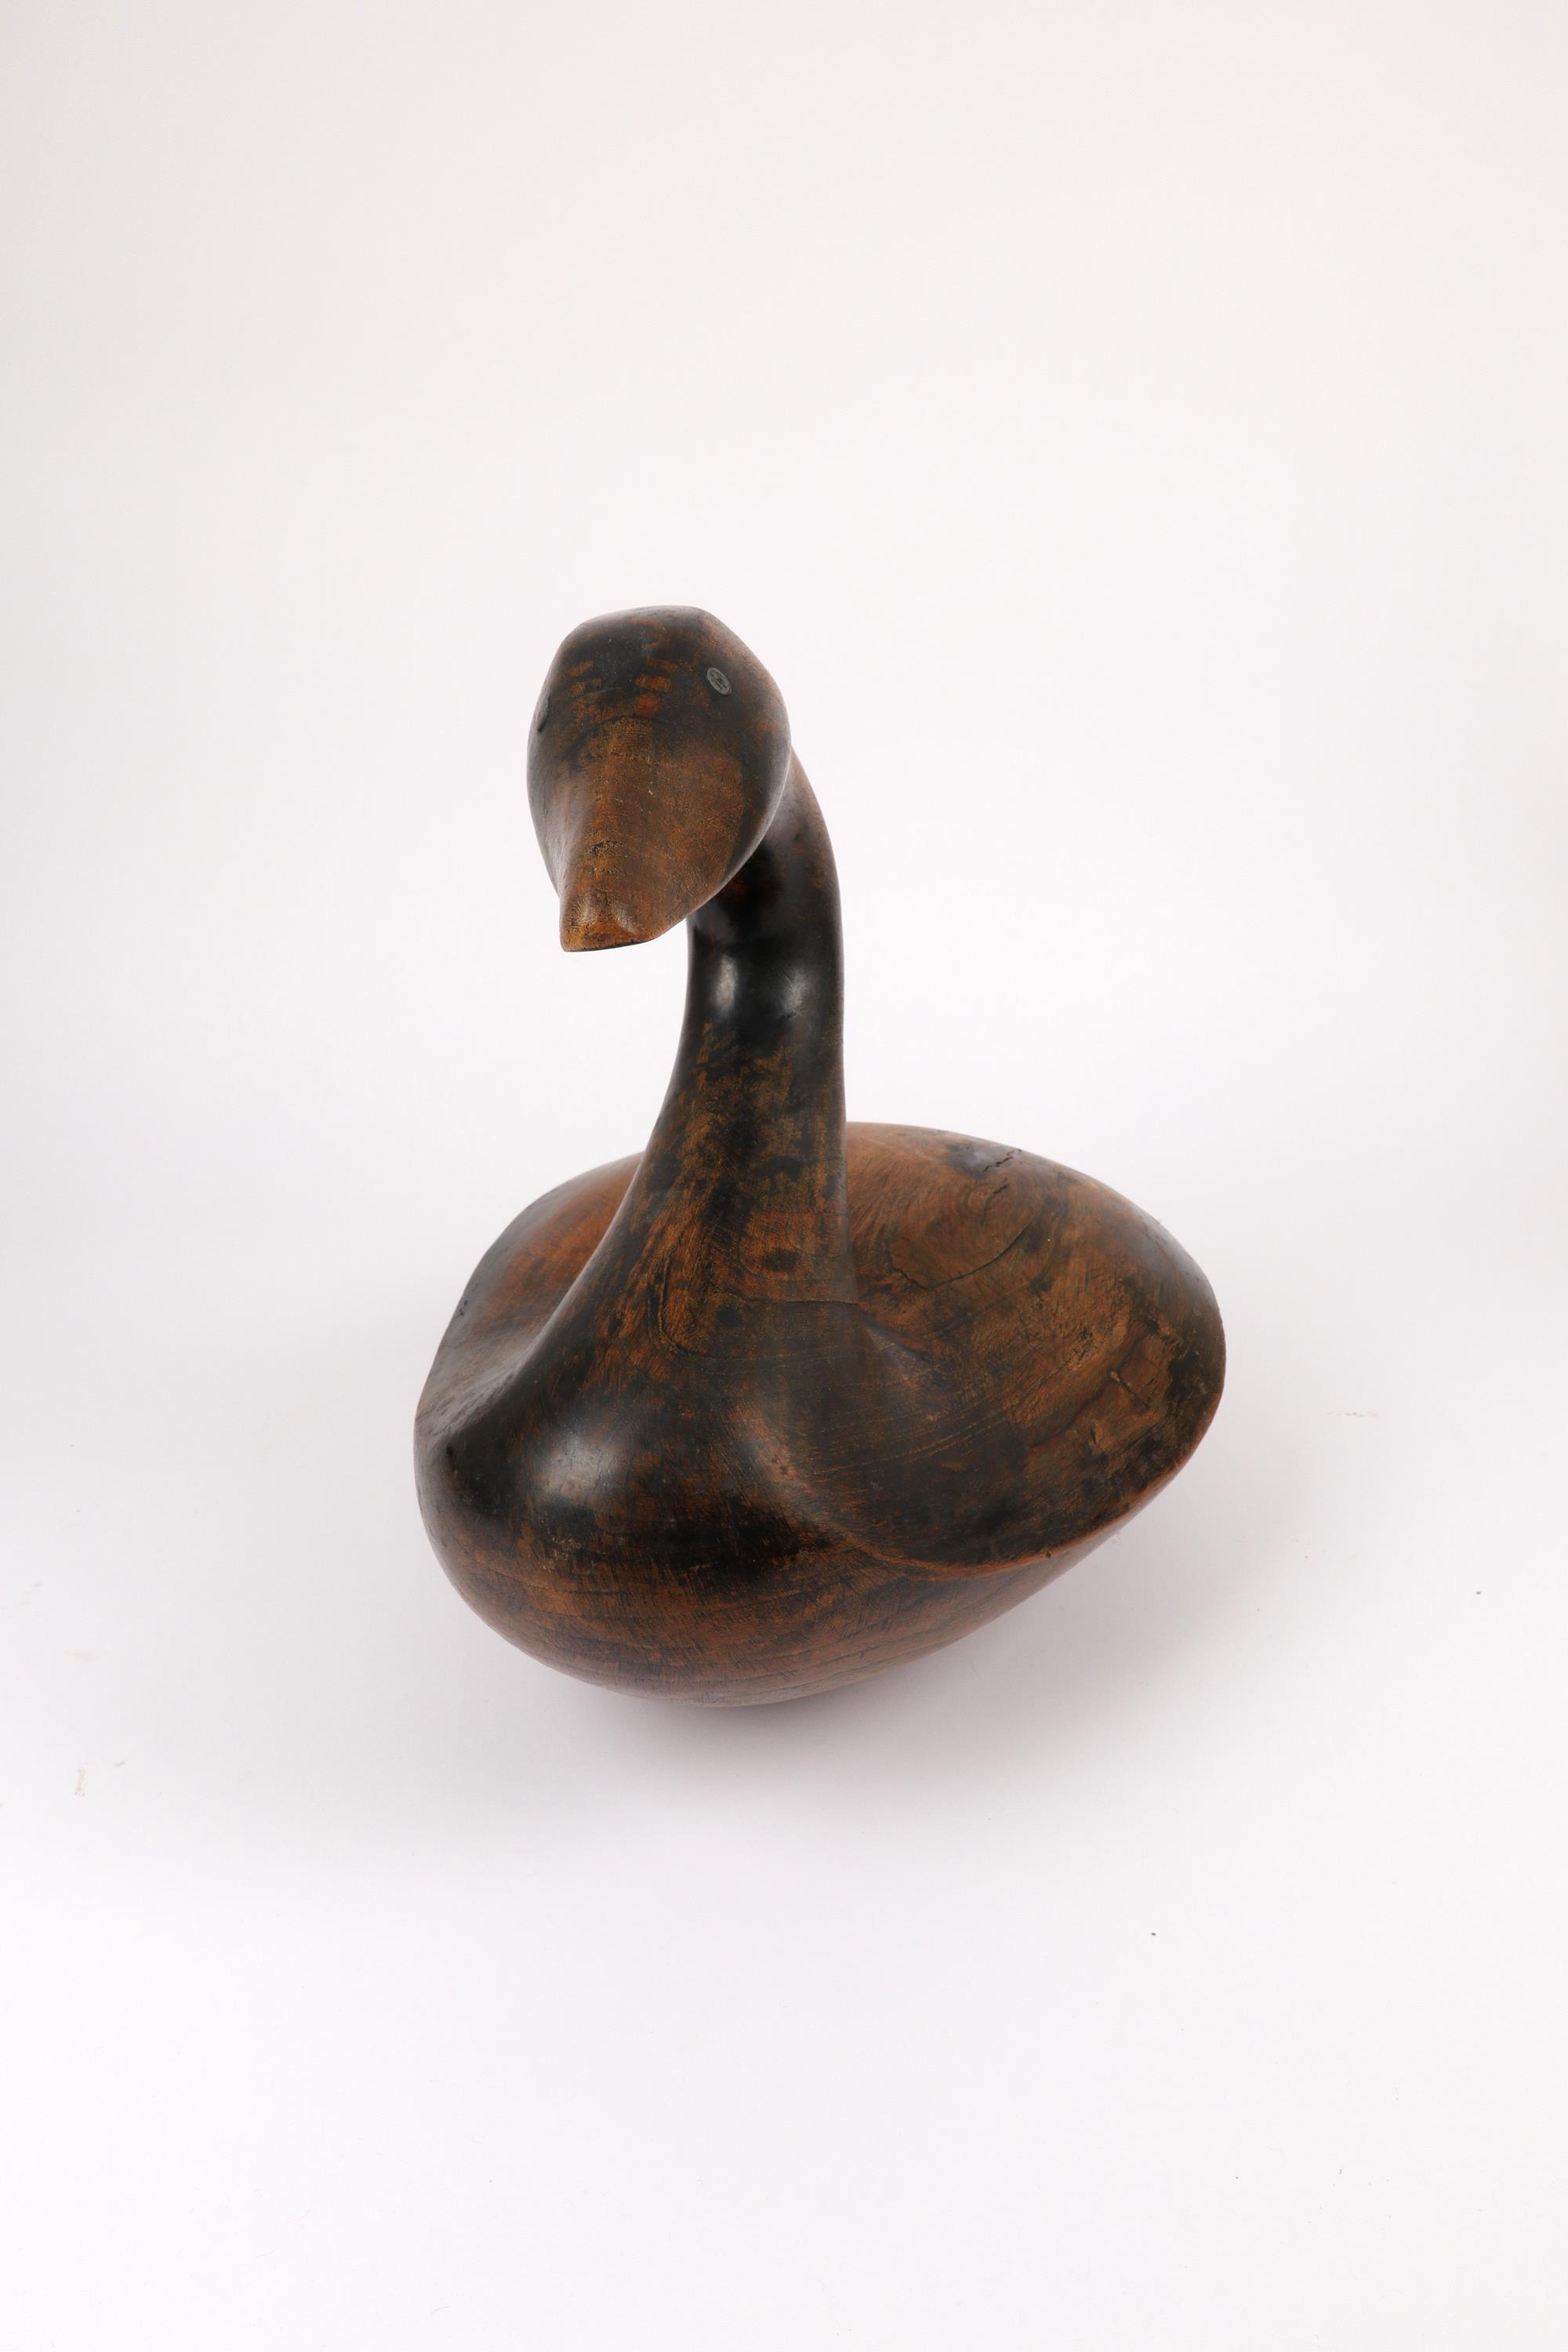 ‡Ian Rook (20th Century) Goose Signed and dated .I.ROOK.84. (to underside) Elm with metal eyes 40 - Image 2 of 4